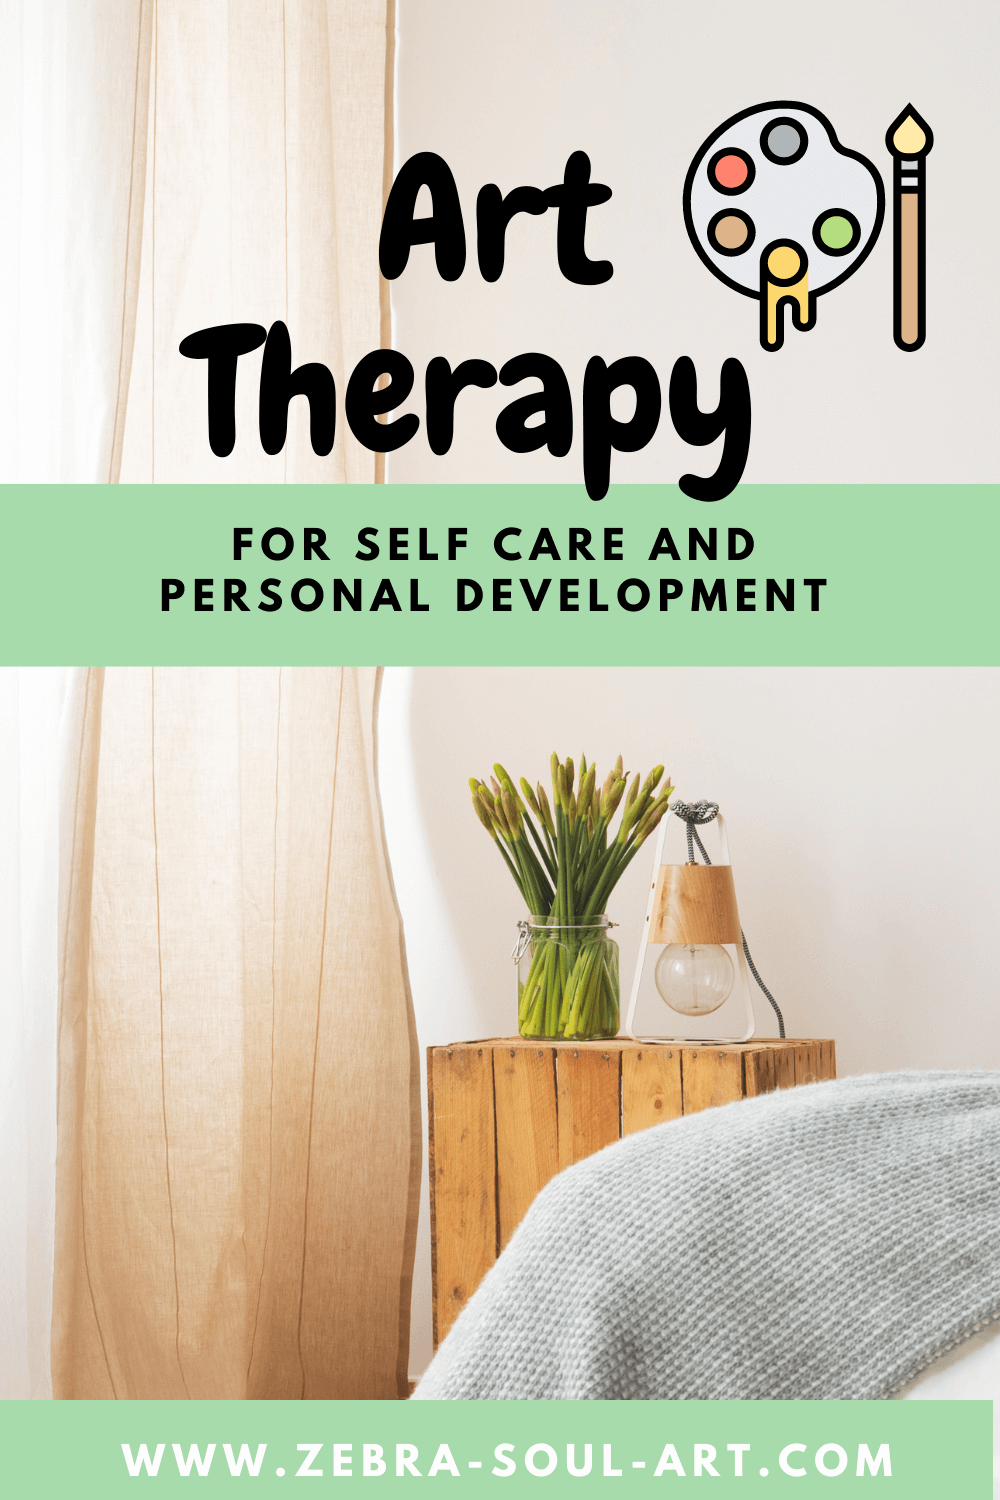 home decoration, with a beige curtain flowers on a bed stand and part of a bed showing . text saying art therapy for self care and personal development